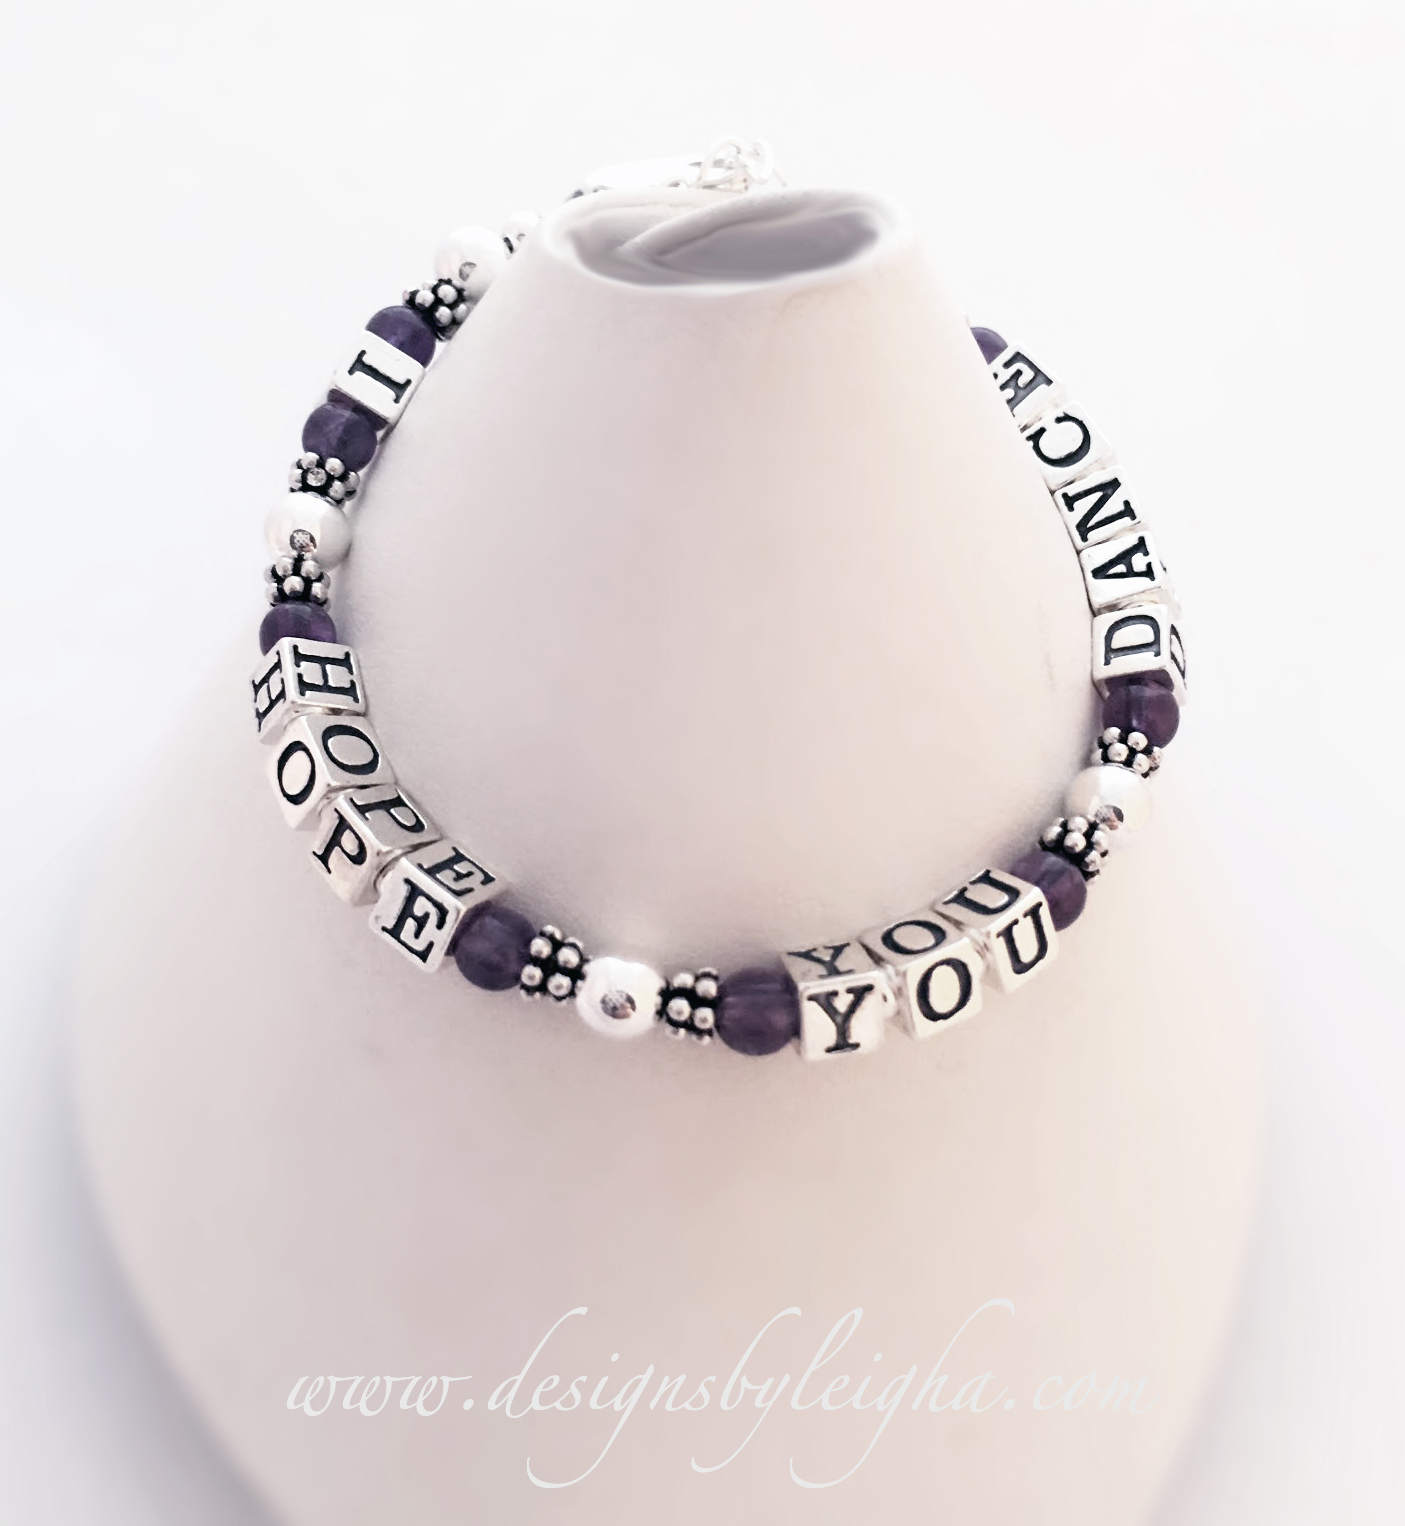 "This I HOPE YOU DANCE Gemstone Bracelet is shown with genuine Amethyst gemstones. The bracelet shown is for a teen and is 6 1/2"". I can do any size. If you want it in an adult size I can either add more sterling silver balls in between the words or you can move up to the 5.5mm block letters (special order)."